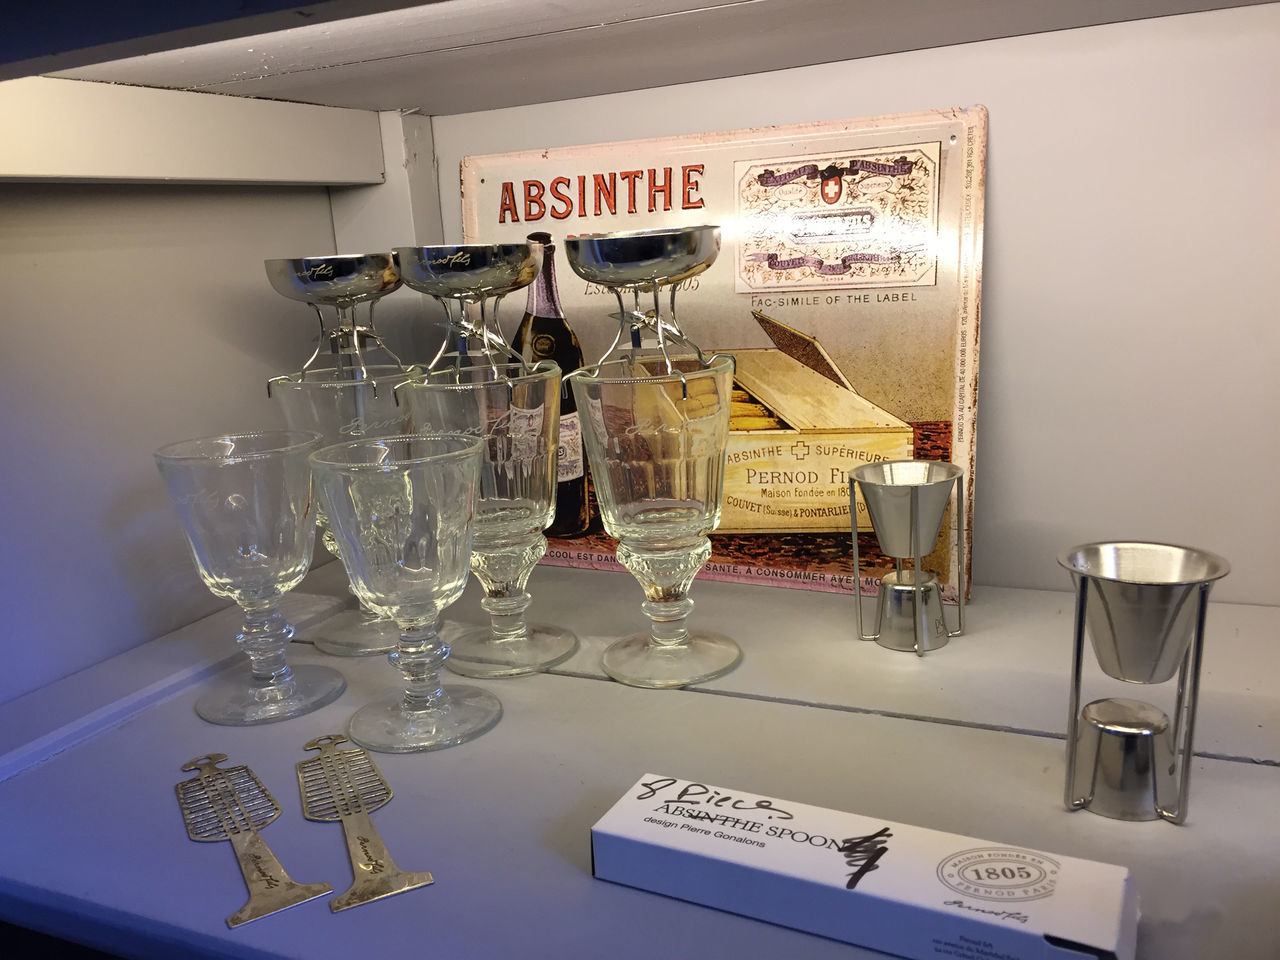 Absinthe Byyrh Day Indoors  Laboratoire No People Preparation  Text Thuir, France Verres